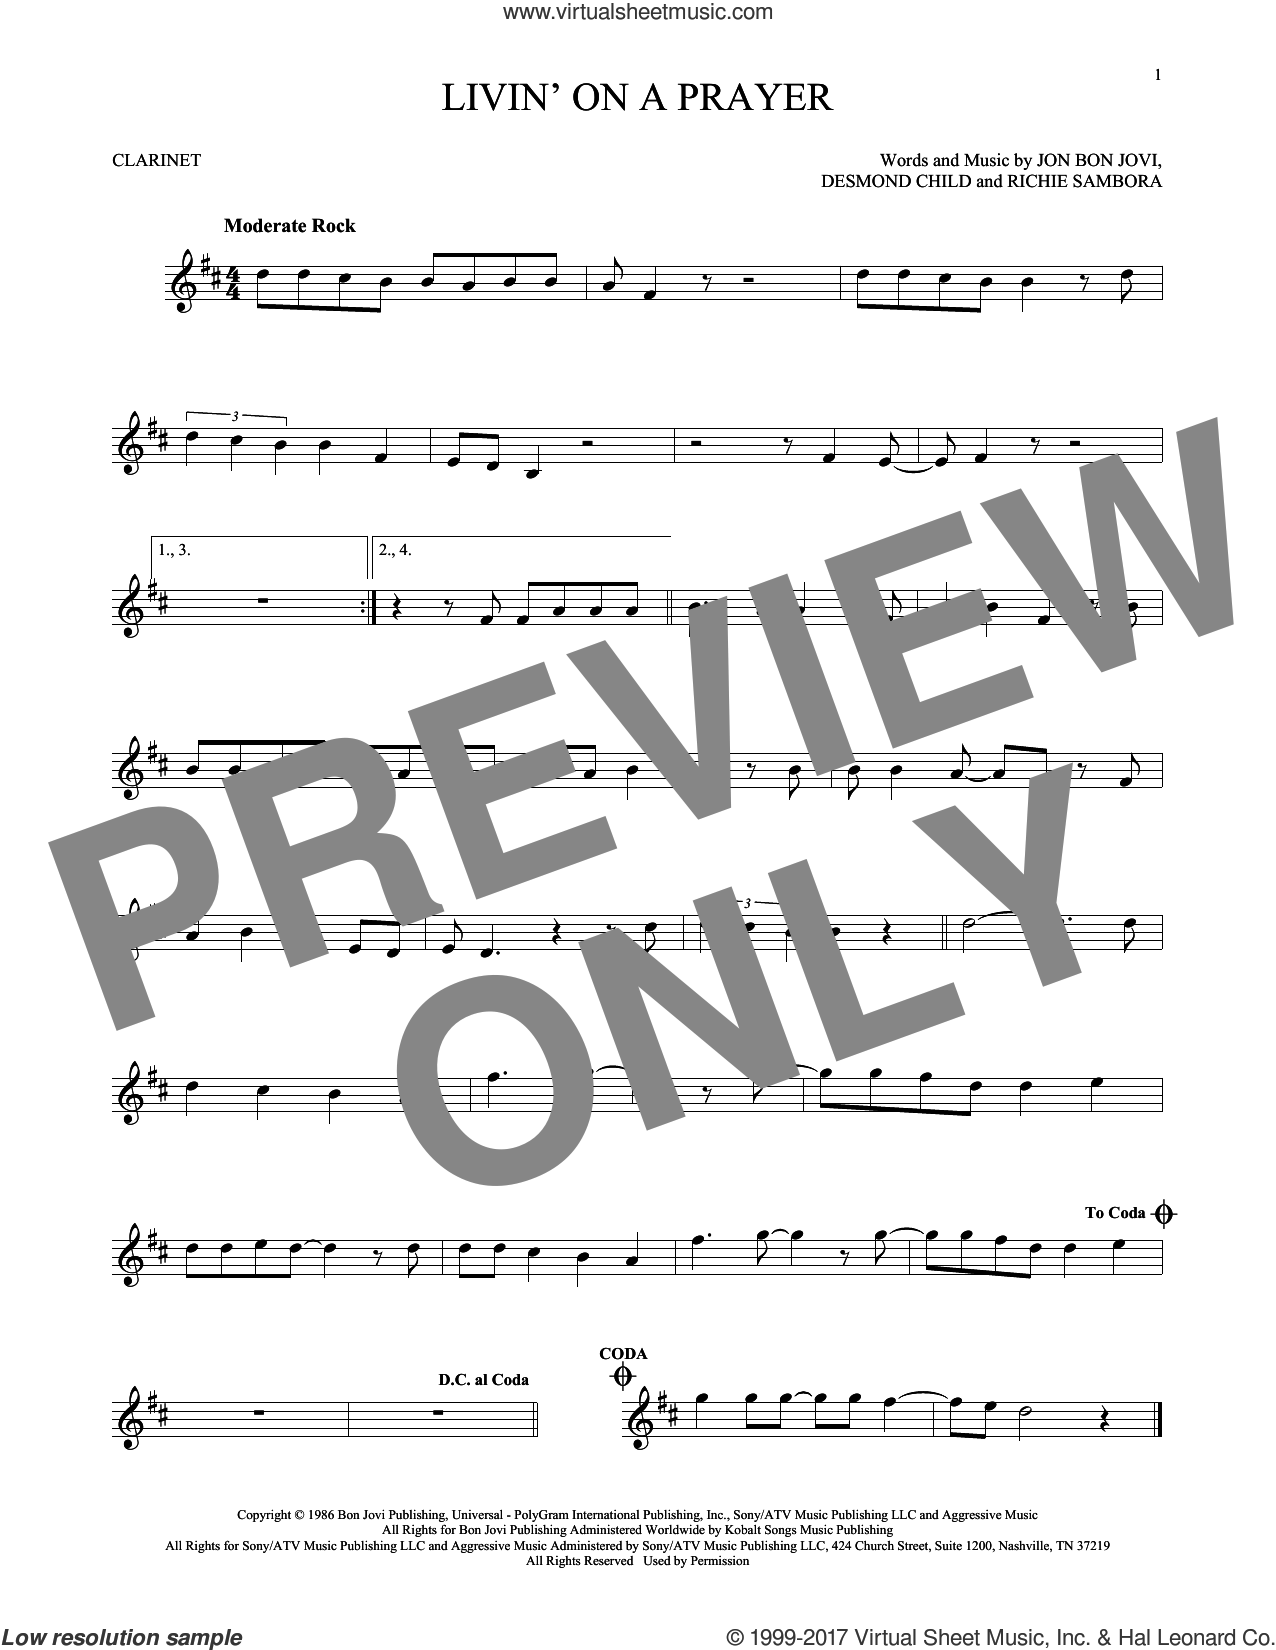 Livin' On A Prayer sheet music for clarinet solo by Bon Jovi, Desmond Child and Richie Sambora, intermediate skill level